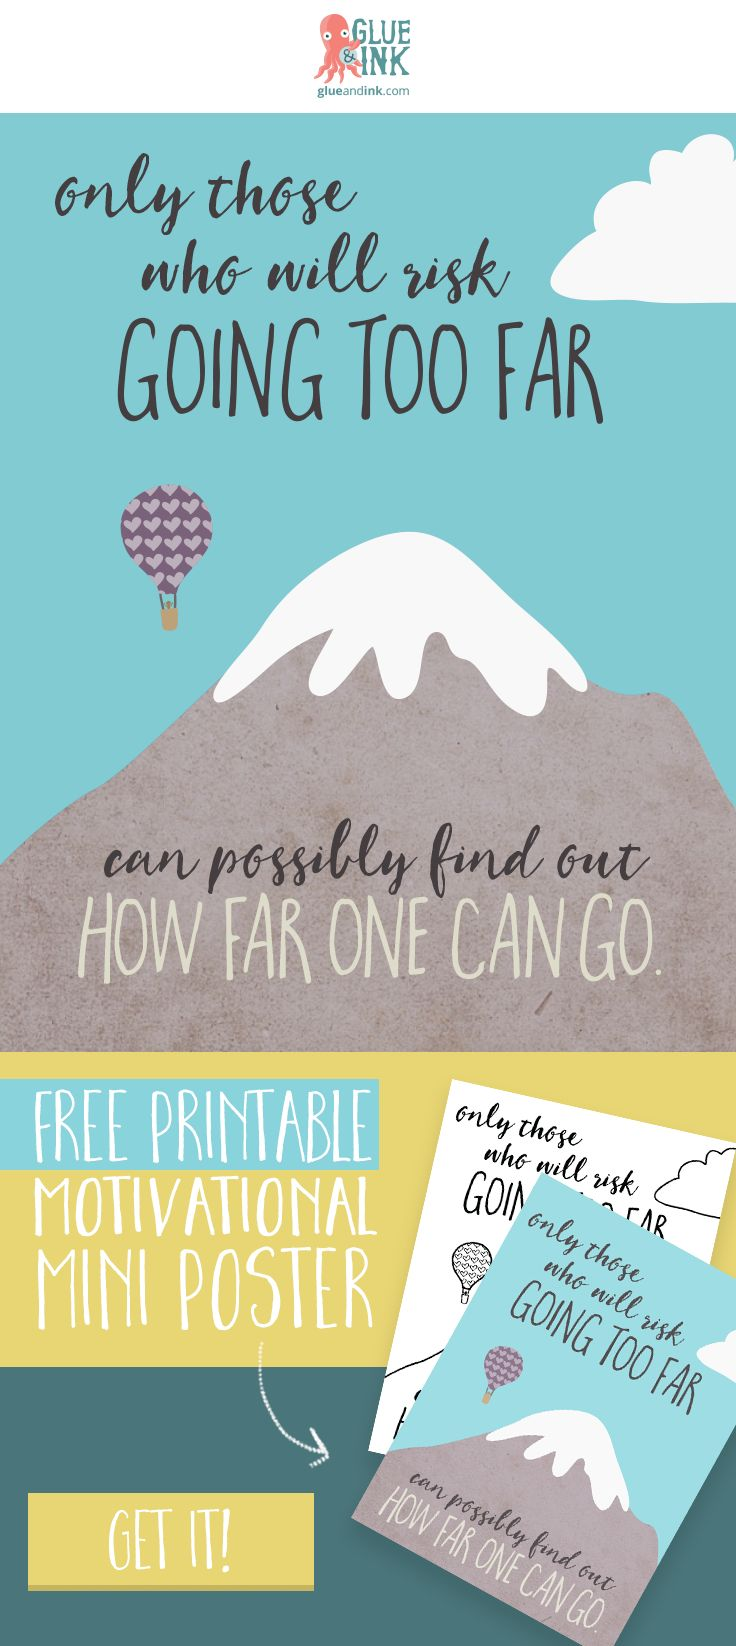 10 best *Freebies!* from Glue & Ink images on Pinterest | Creative ...